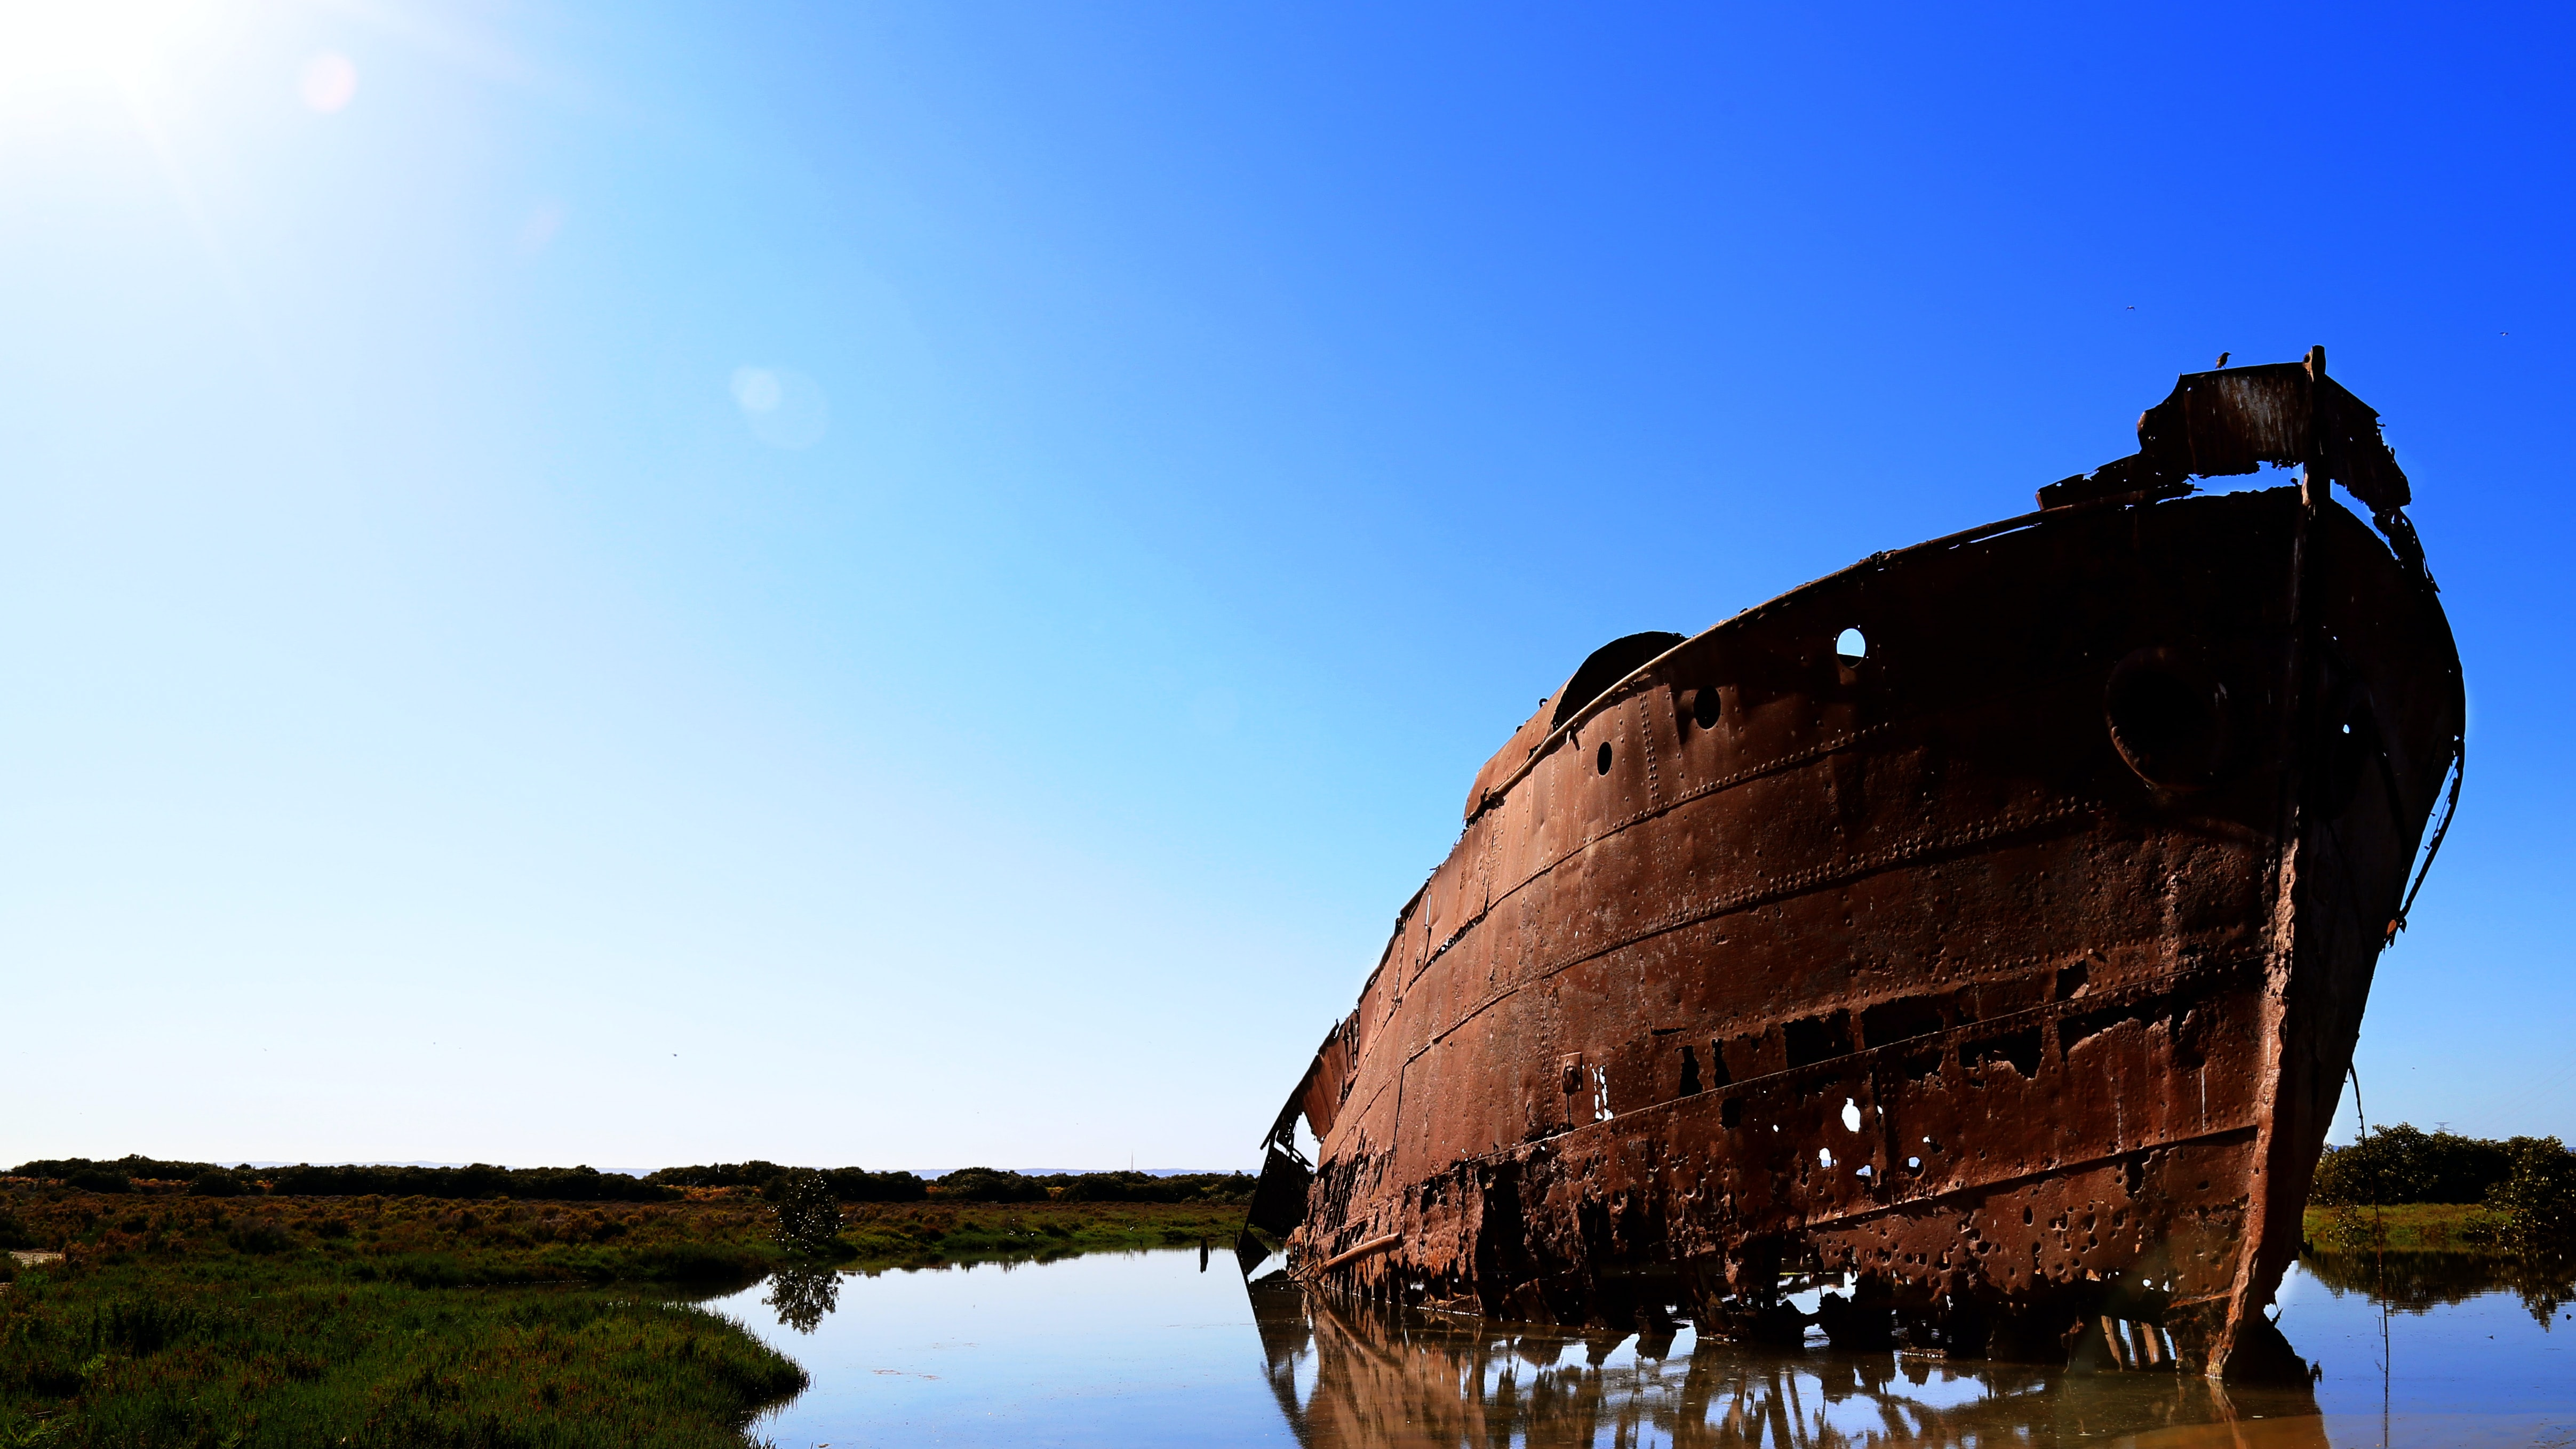 rusted boat near shore under blue sky